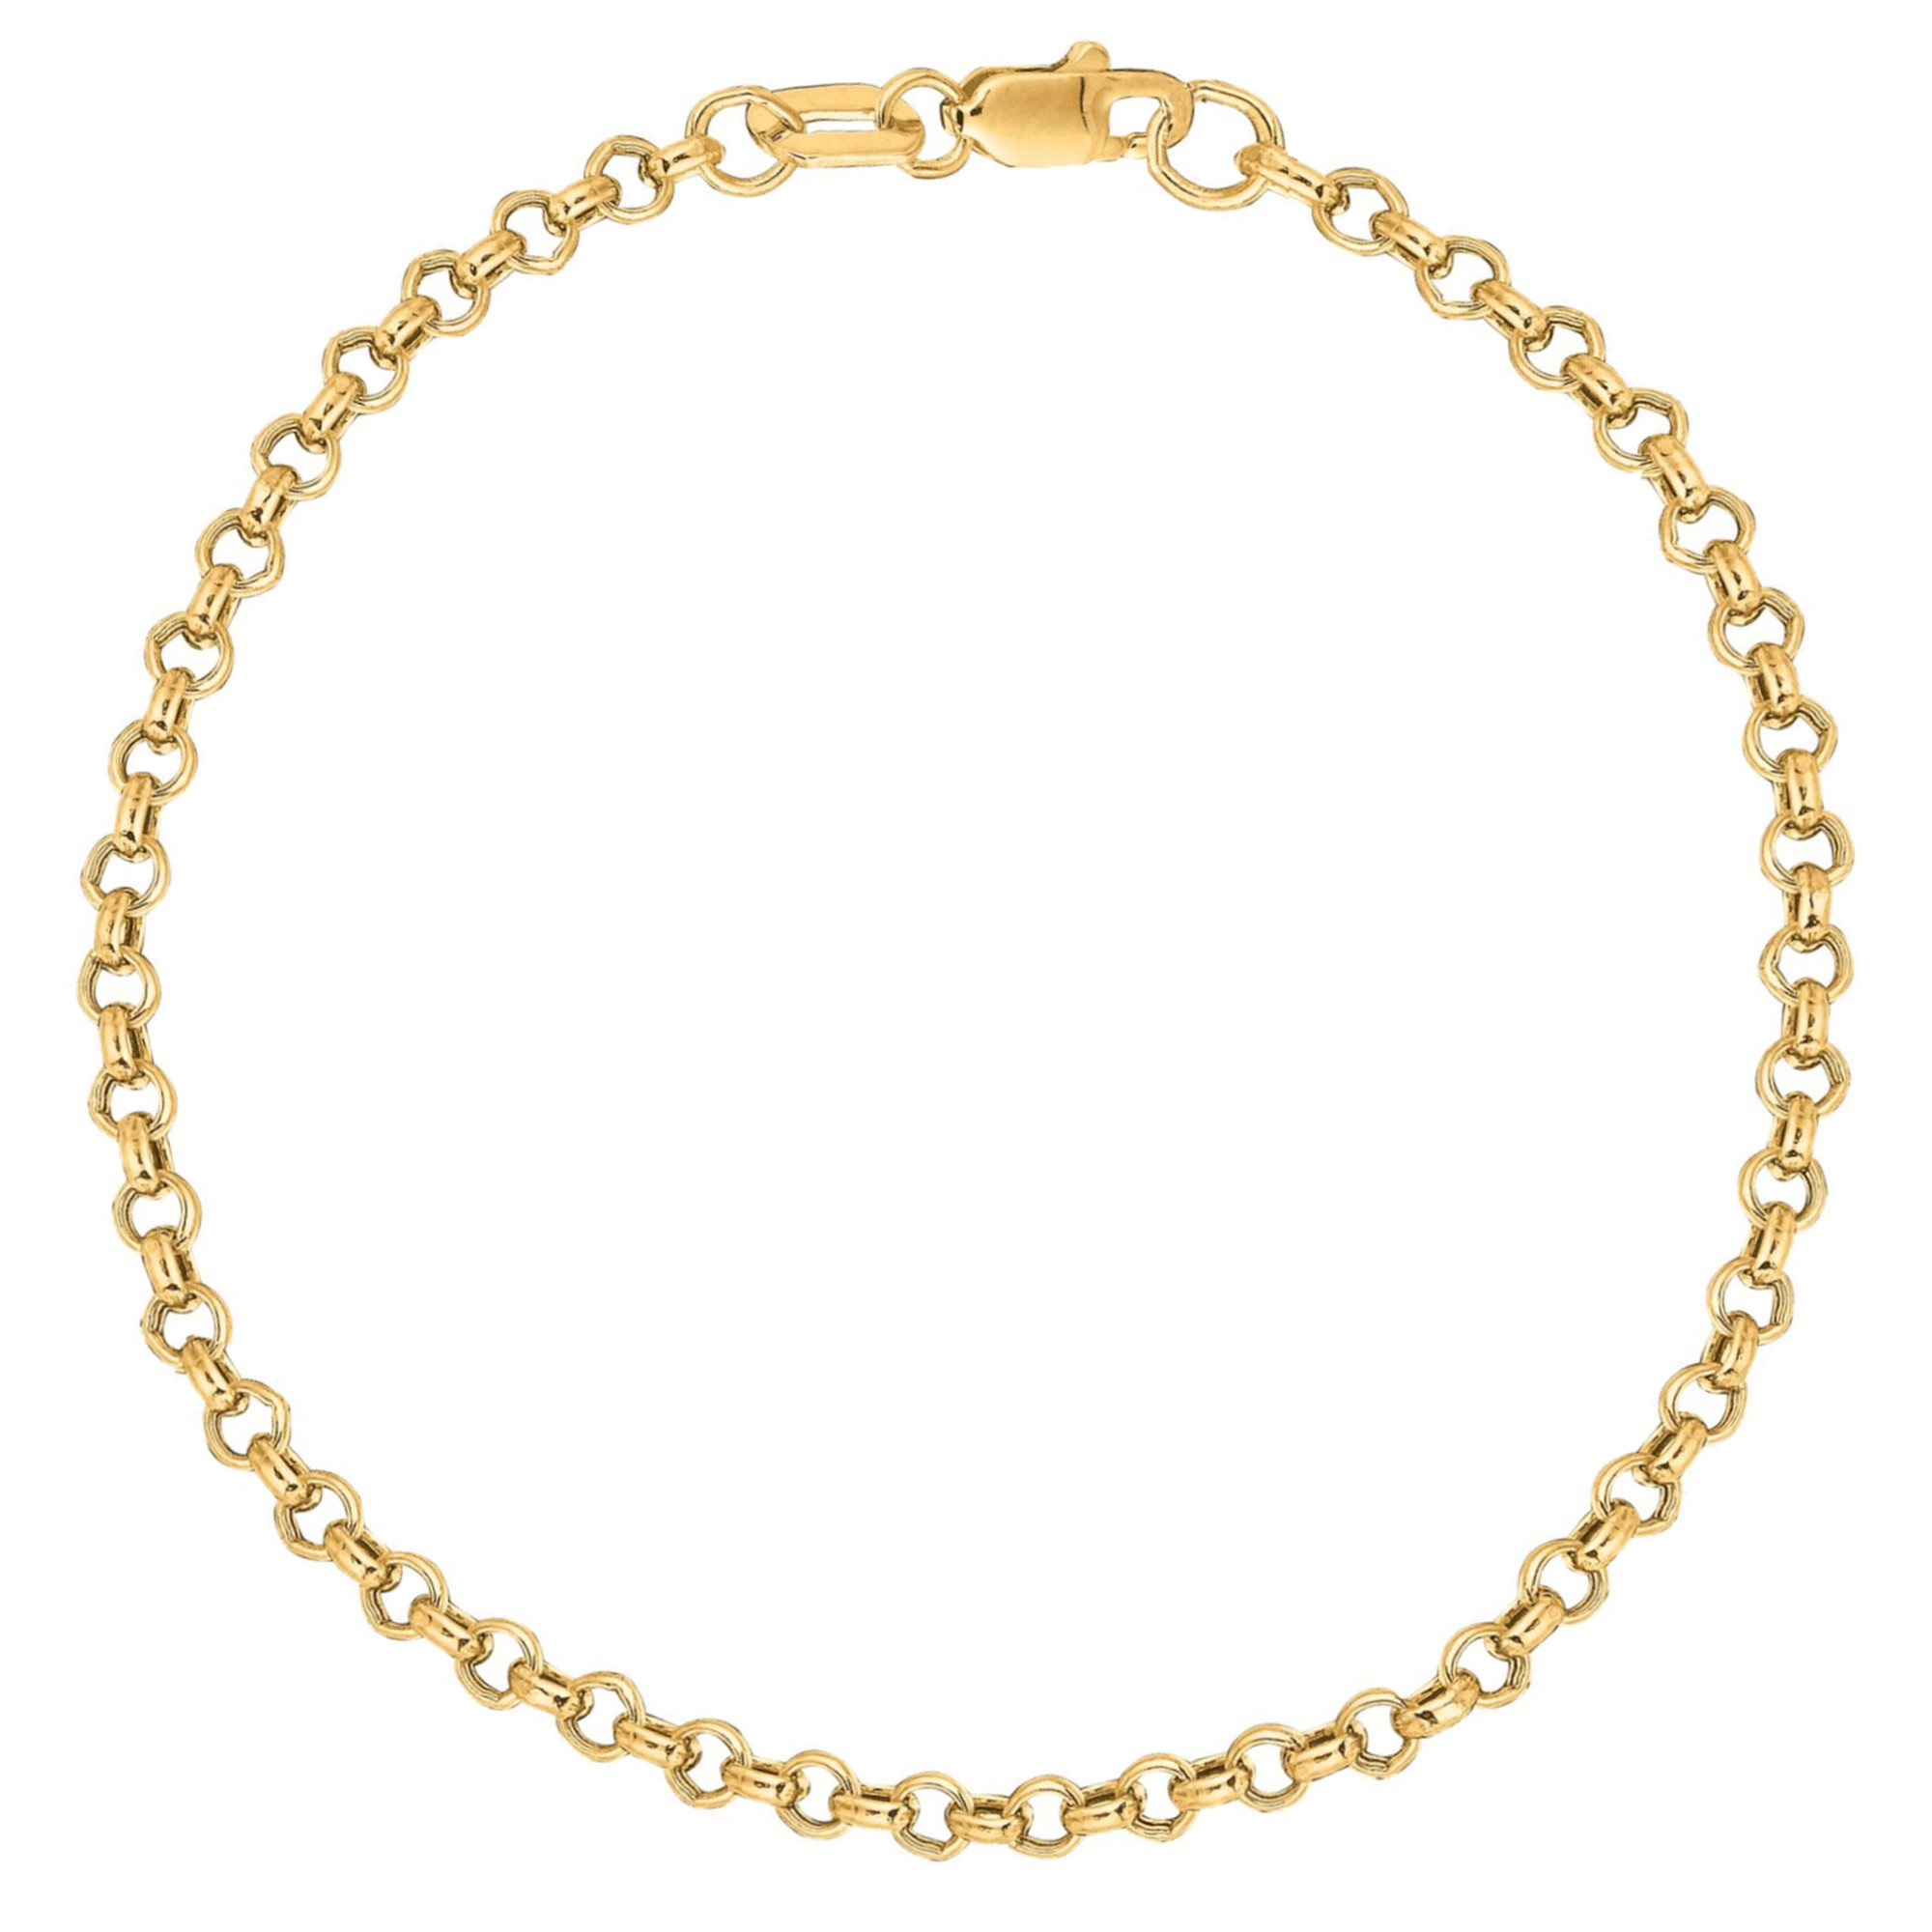 10k Solid Yellow Gold Rolo Chain Ankle Anklet 11 Inches